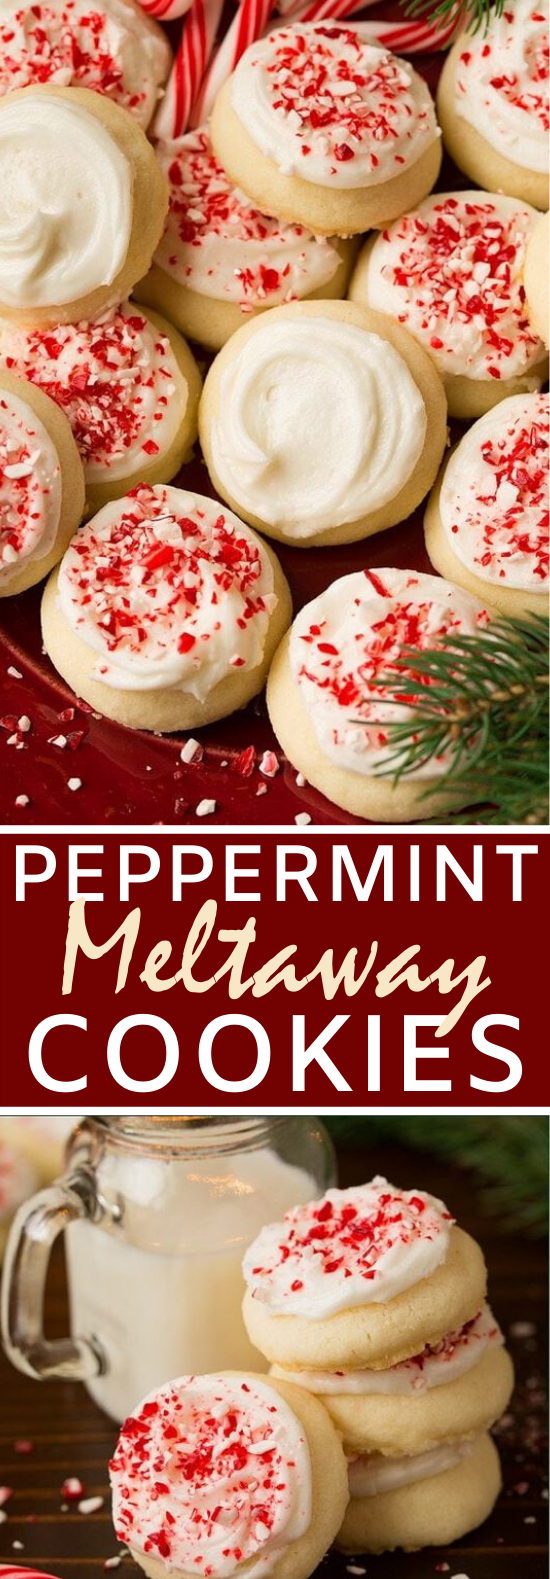 Peppermint Meltaway Cookies #cookies #recipe #baking #holiday #desserts